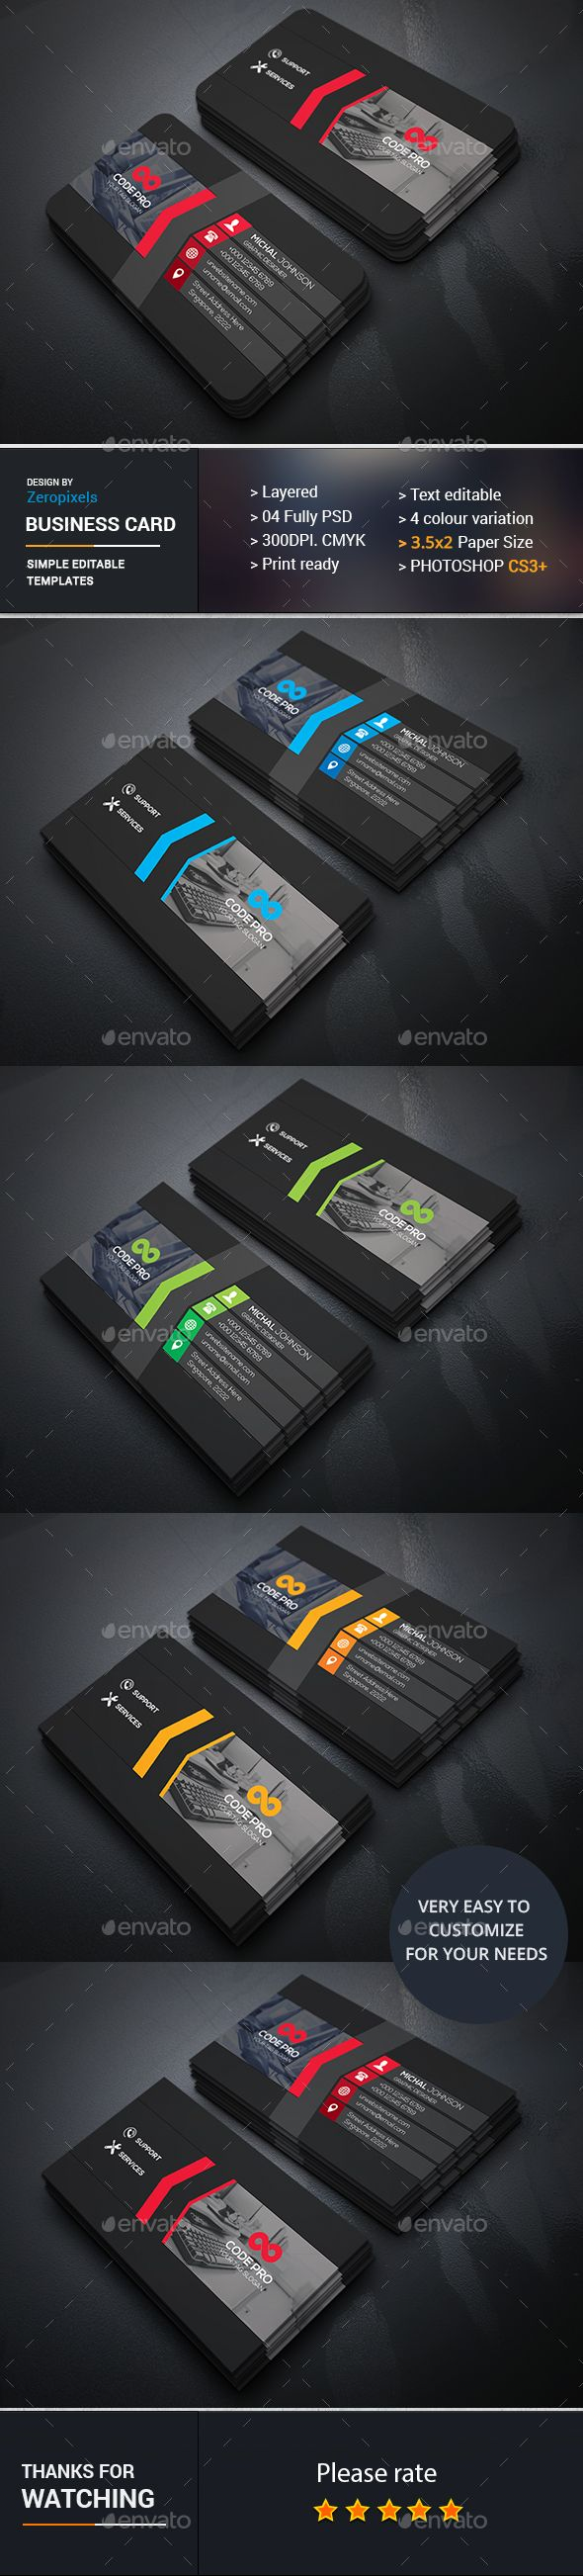 Computer repair business card photoshop psd professional computer repair business card photoshop psd professional designer available here https reheart Gallery